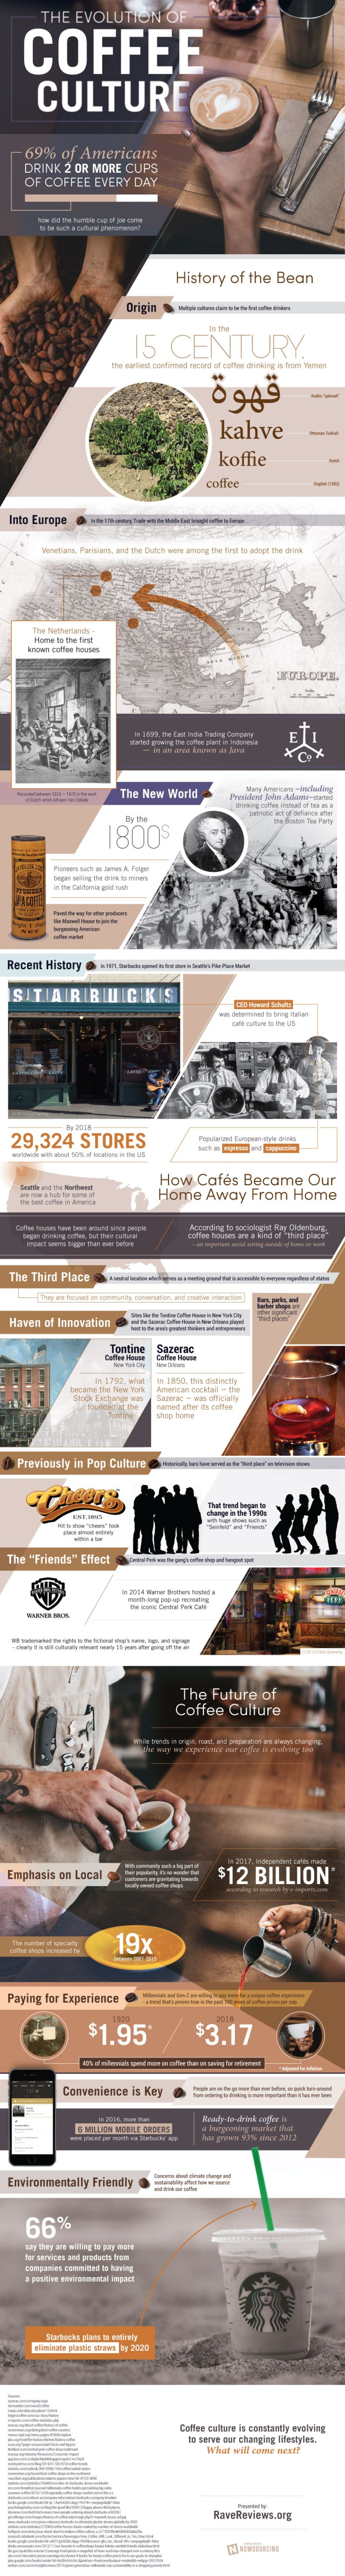 The Evolution Of Coffee In Culture 1